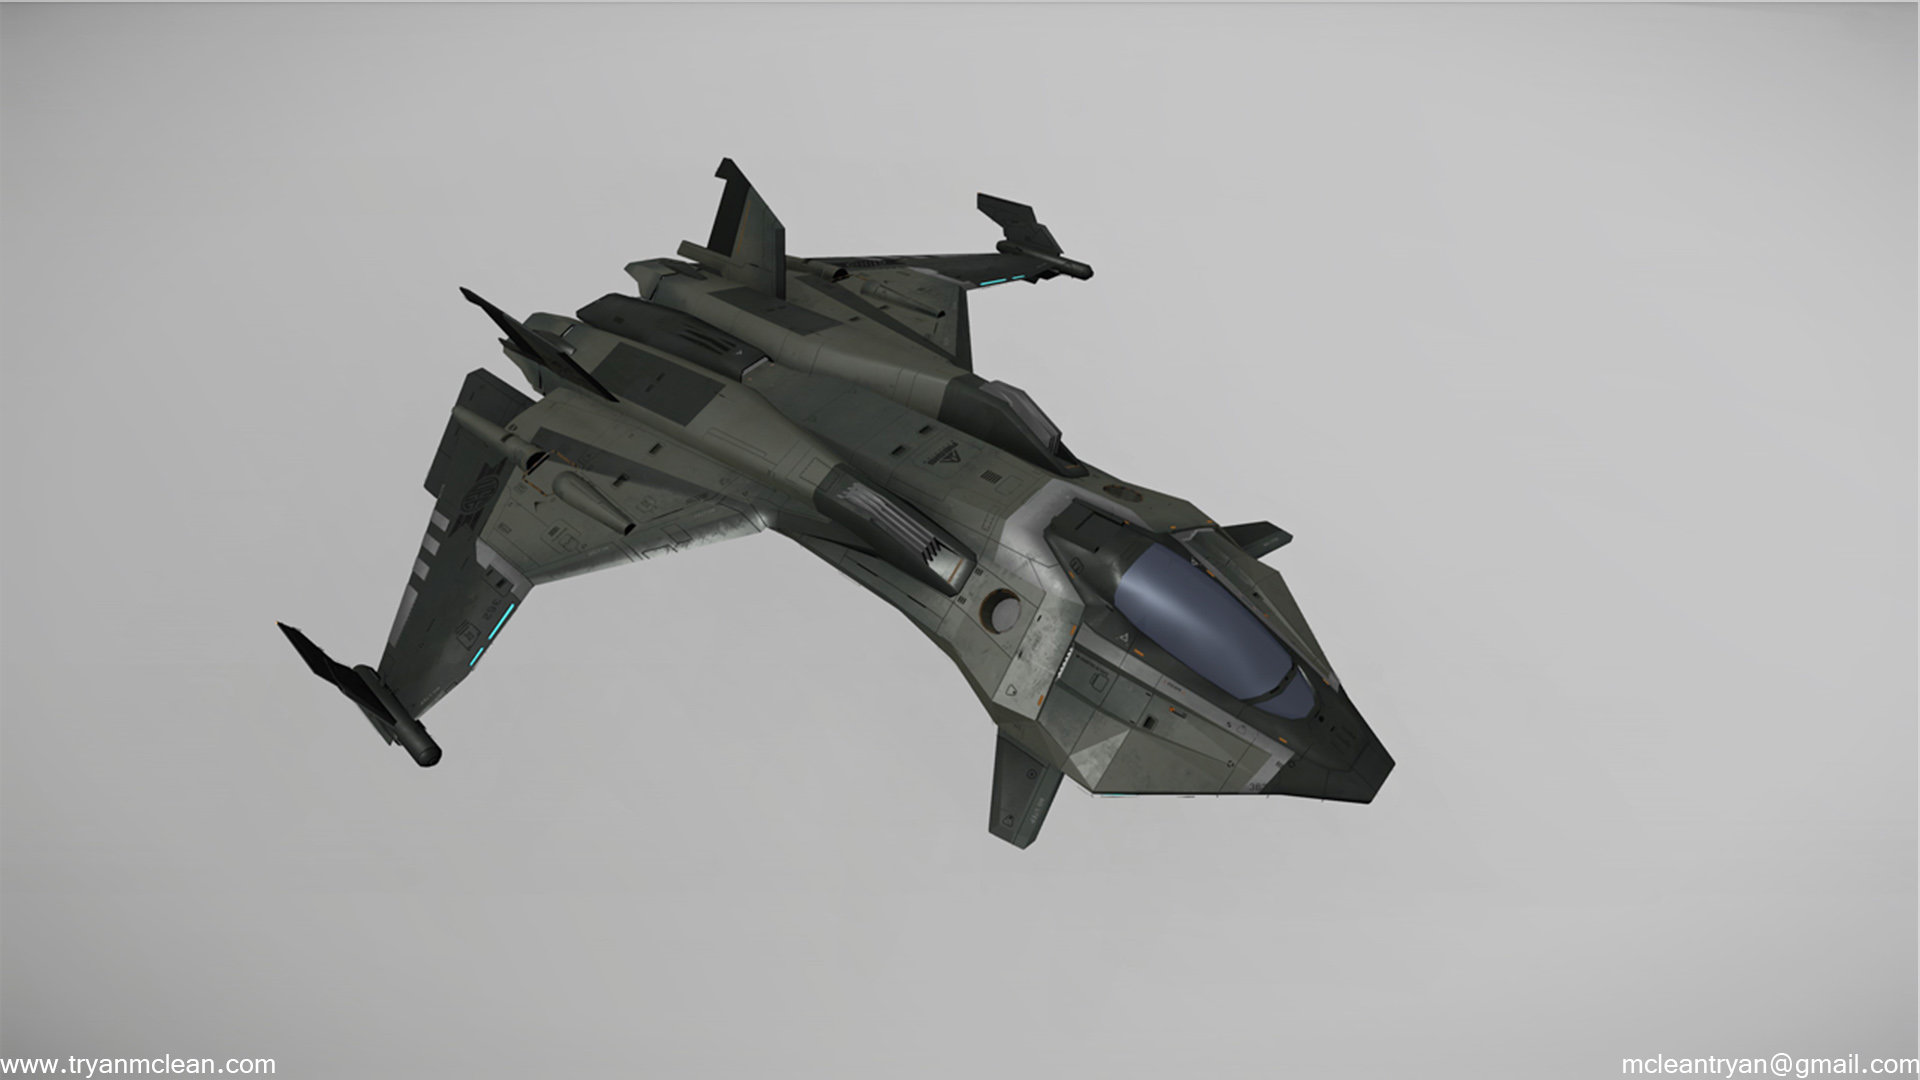 Star Citizen Subscriber Flair Model Ship. Modelling by my, down res from in game model. Textures by CIG Austin.